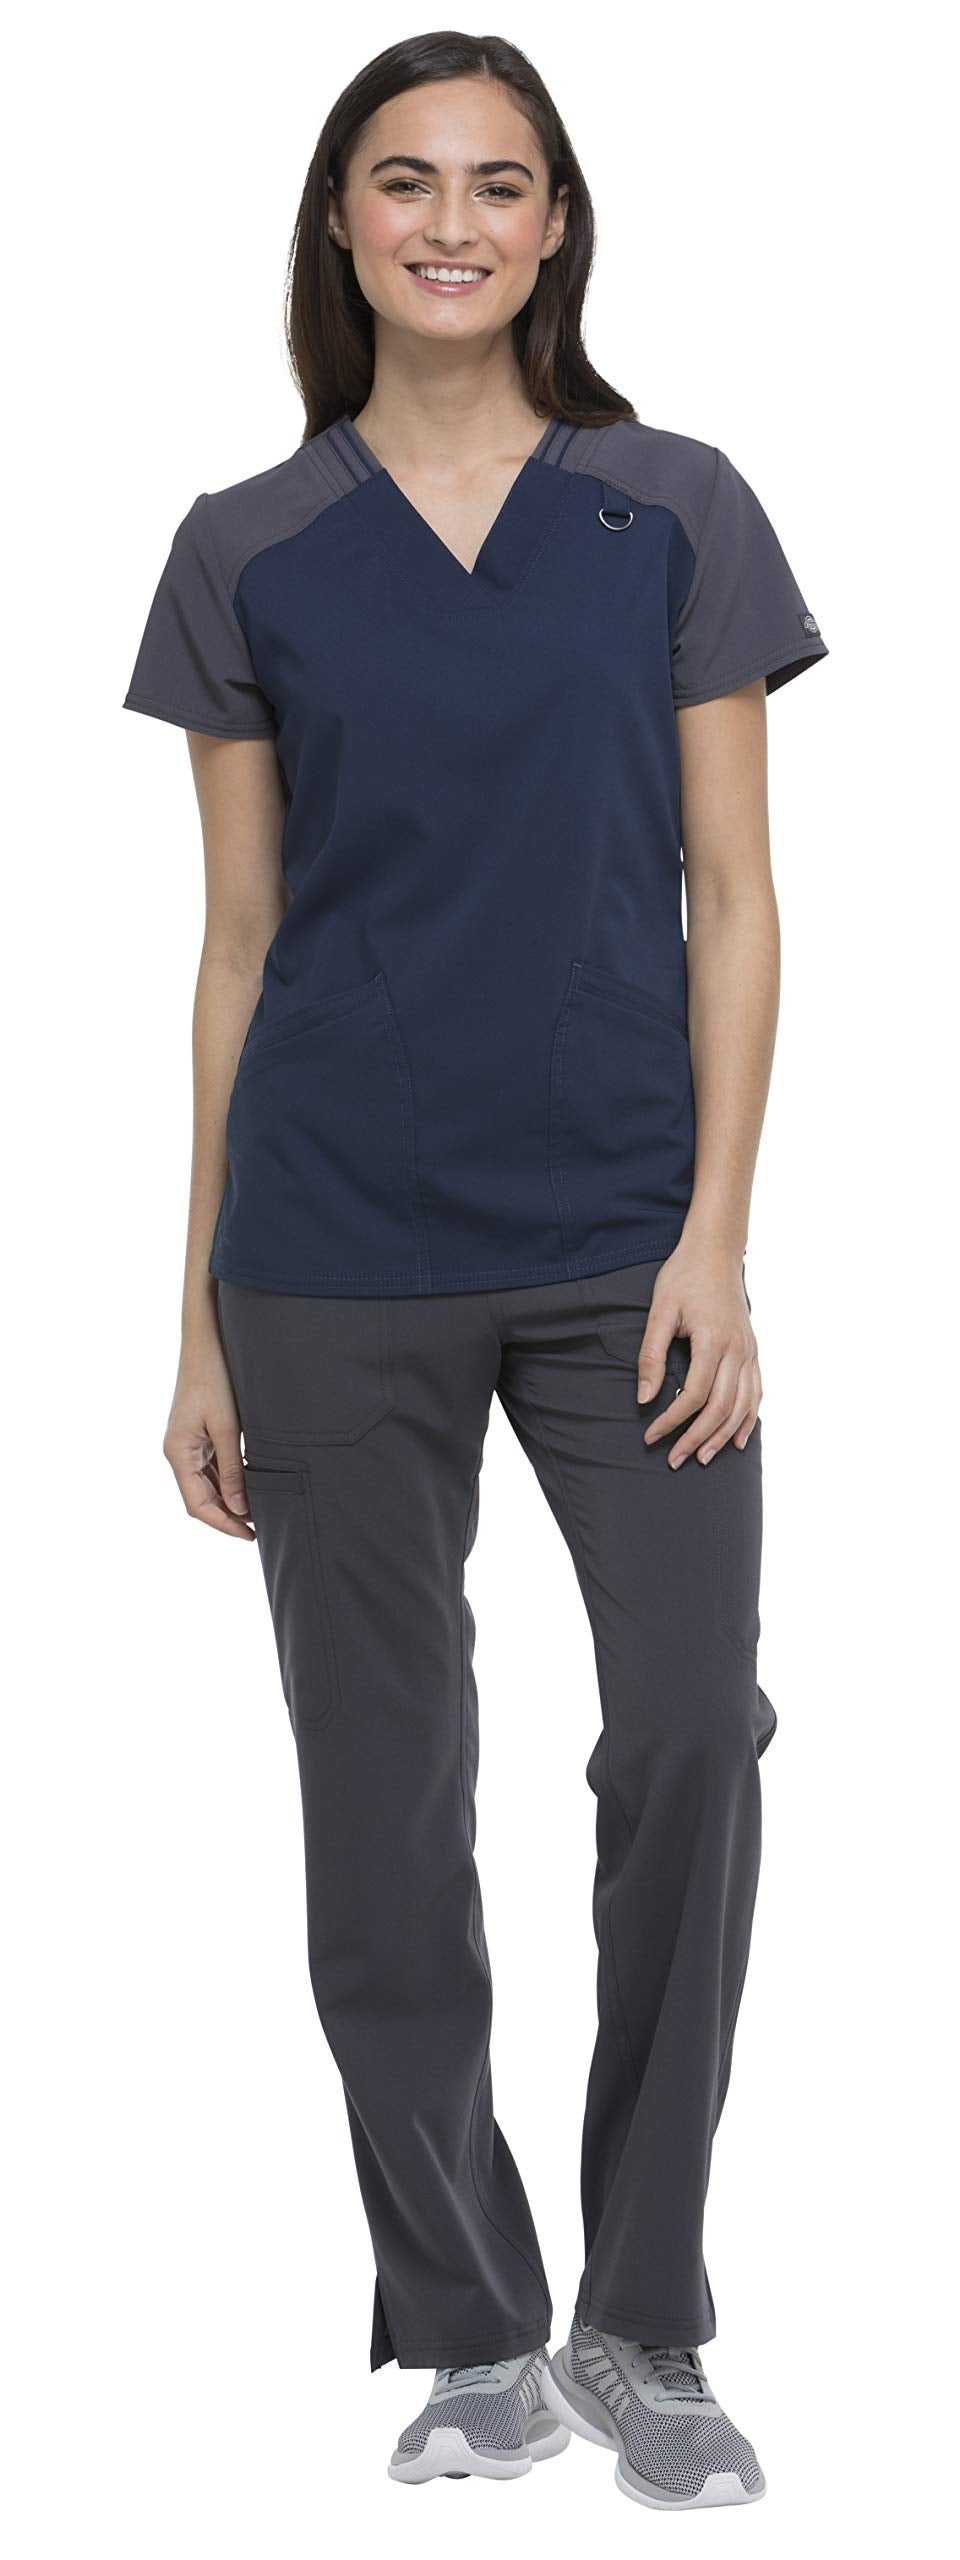 Dickies Xtreme Stretch Women's Medical Uniform Scrub Set Bundle - DK655 Contrast V-Neck Top & DK020 Rib Knit Drawstring Pants (Navy/Pewter - Large/Large)